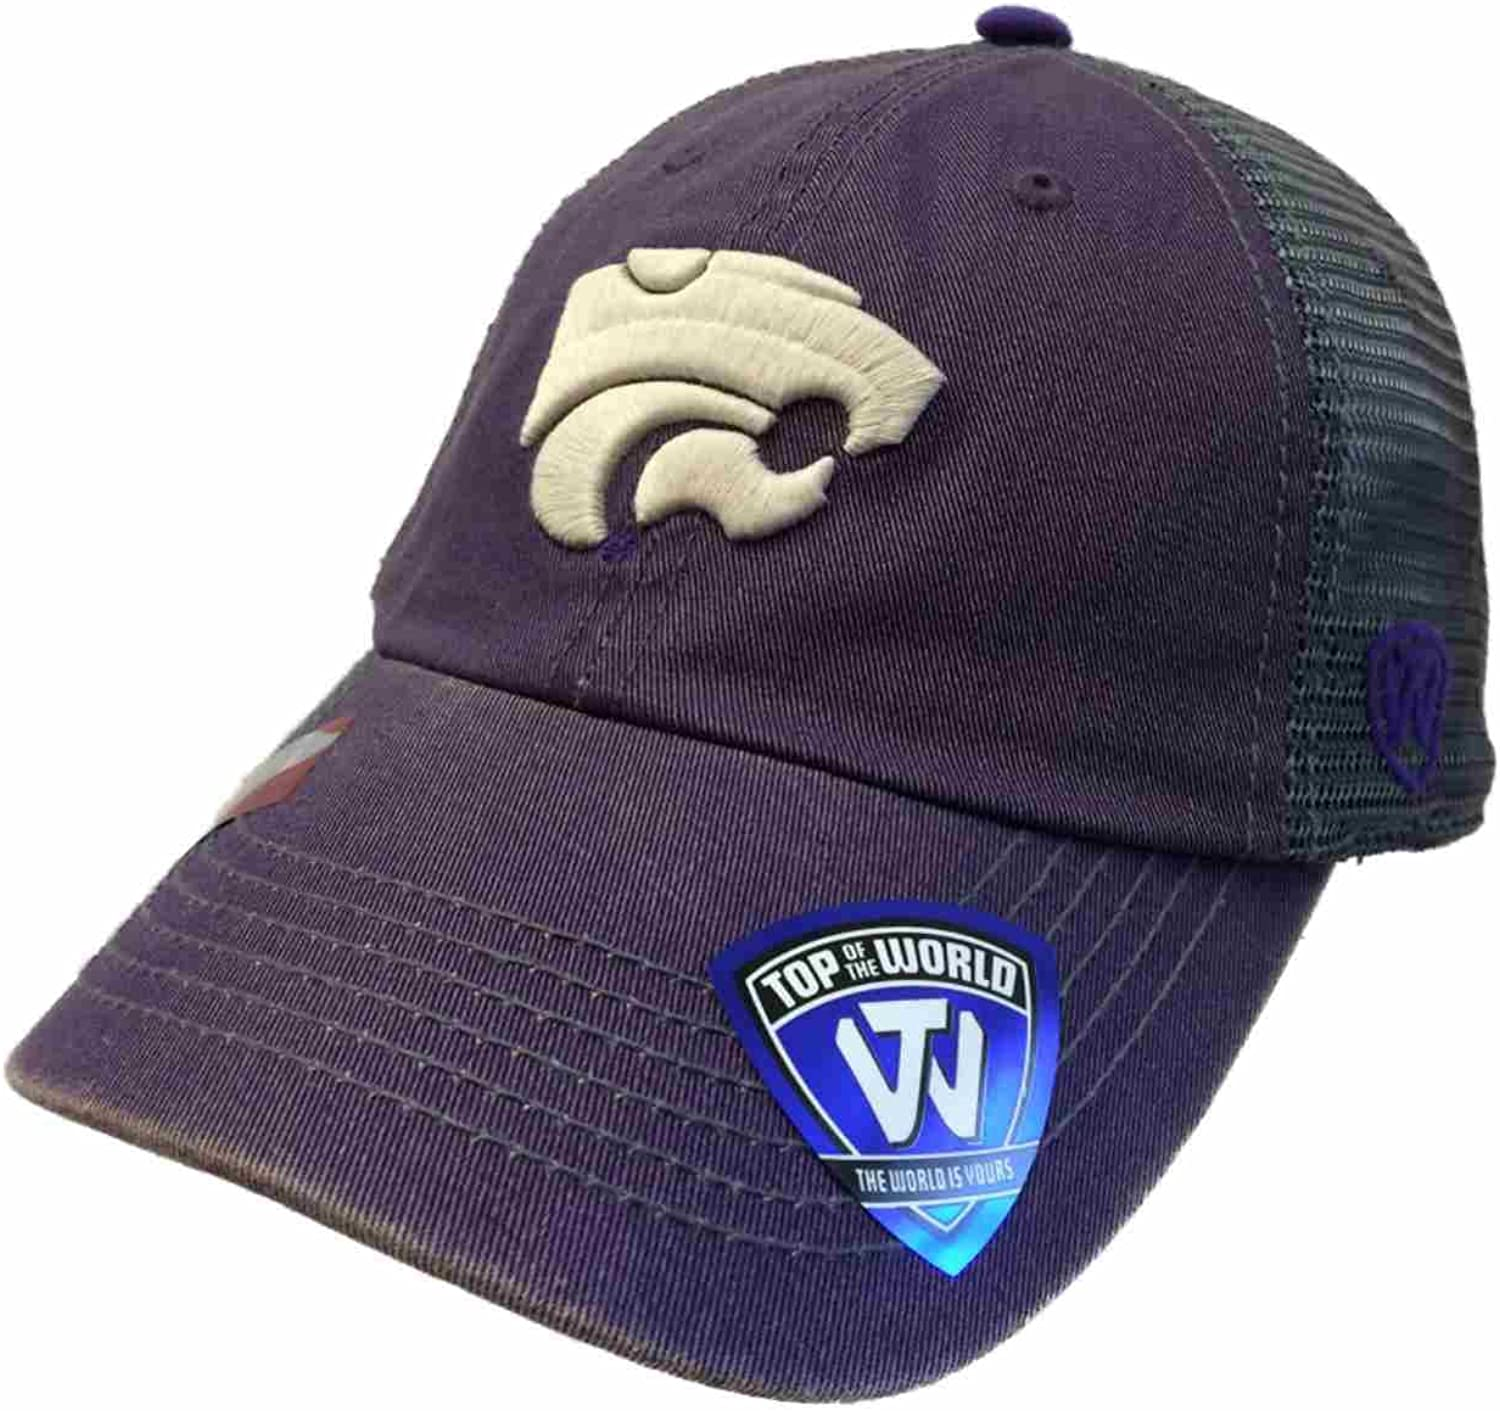 Purple NCAA Kansas State Wildcats Relaxed Fit Adjustable Mesh Offroad Hat Adjustable